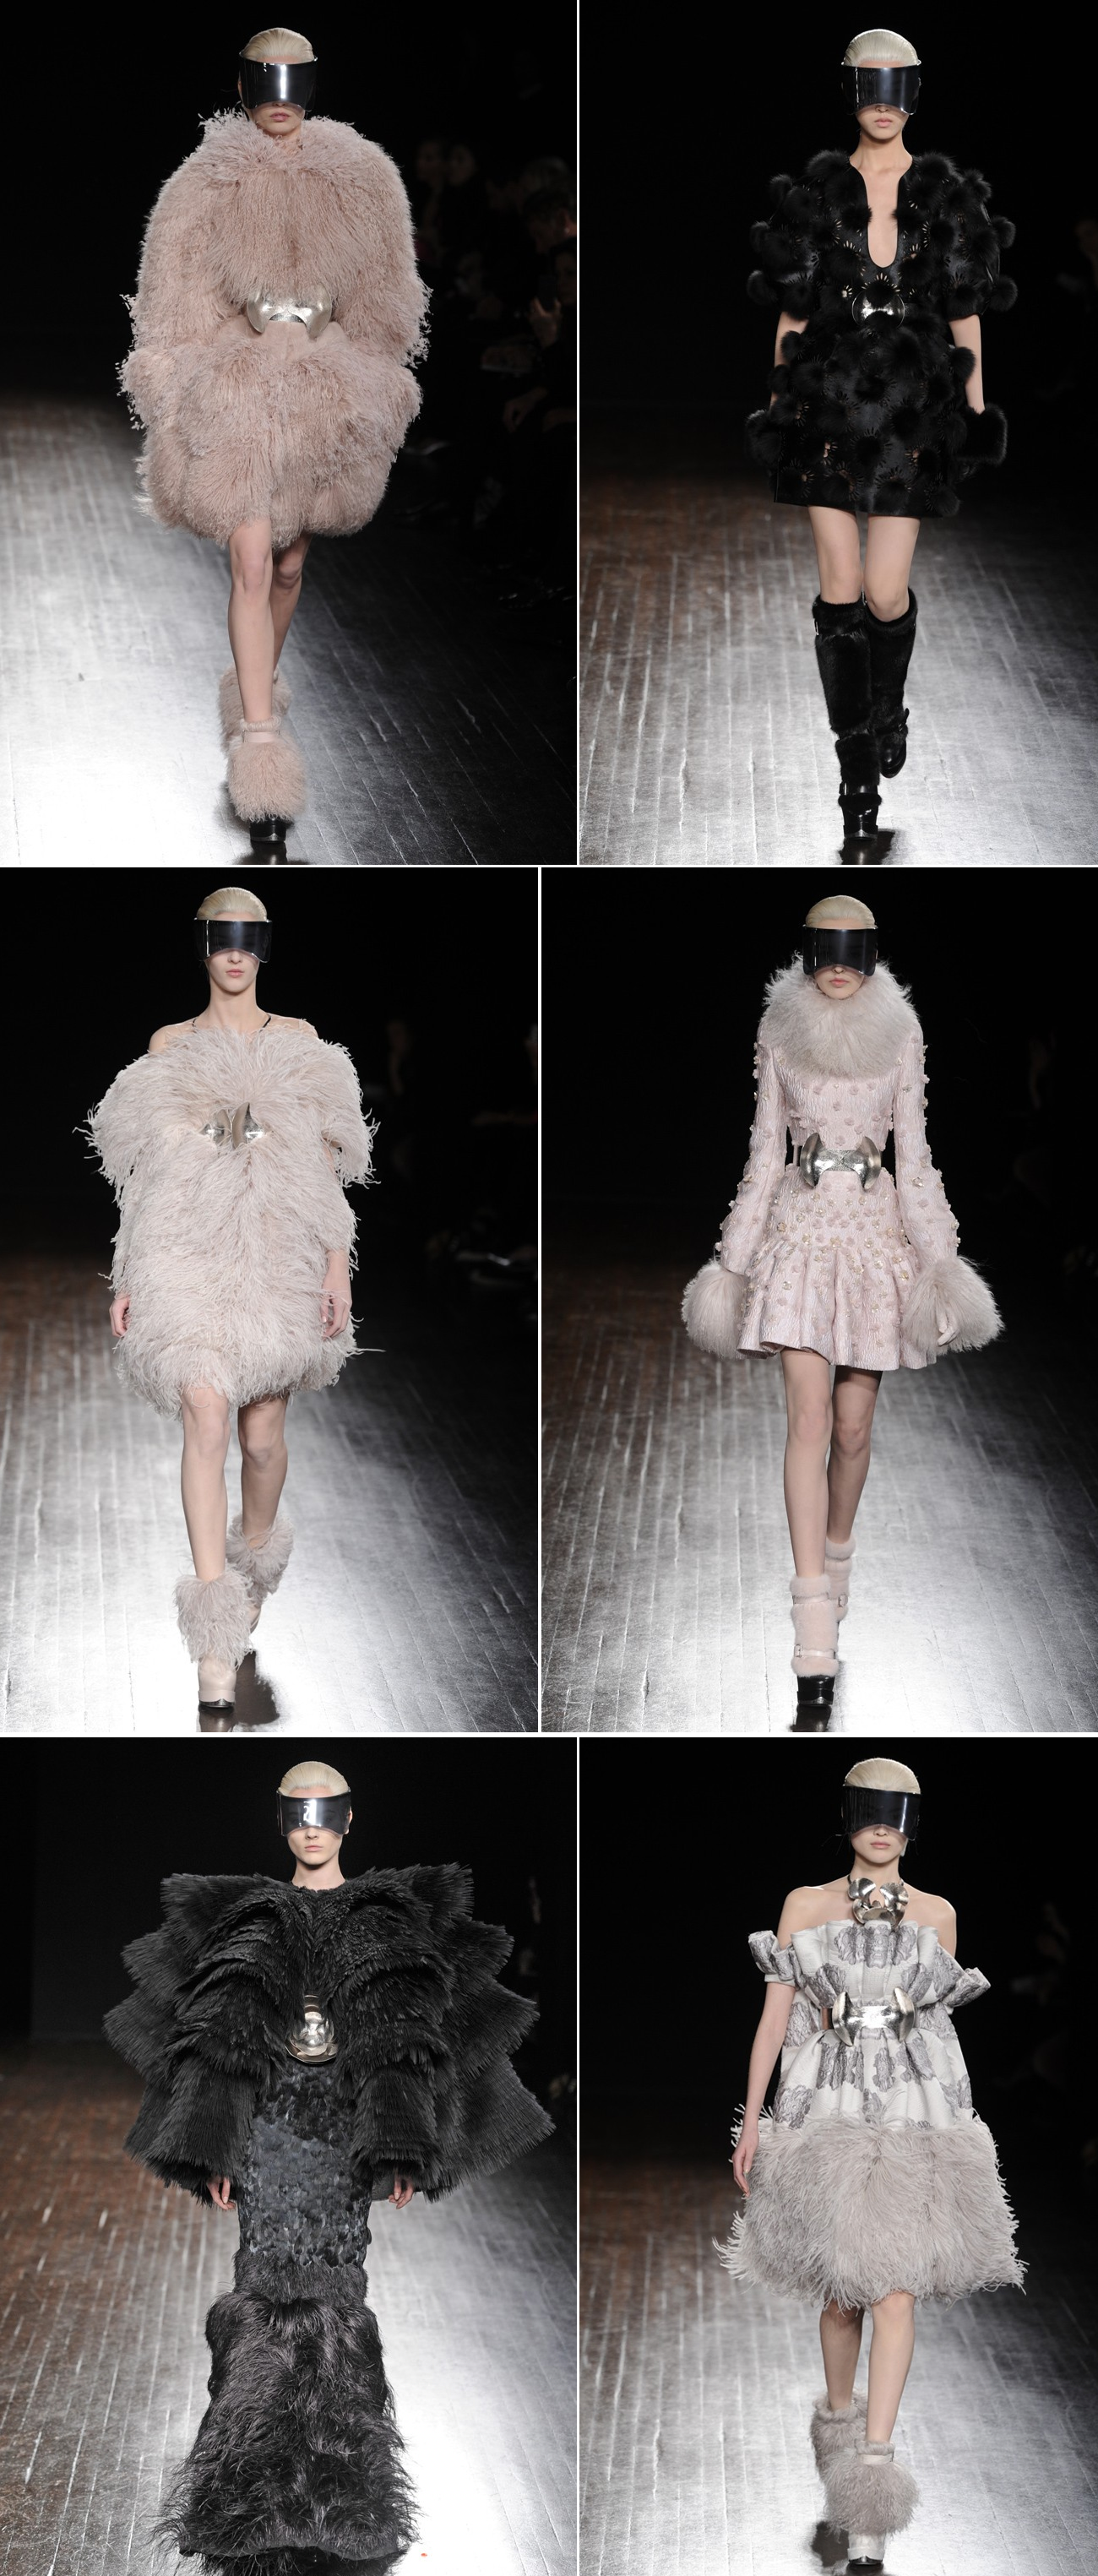 Haute-couture-wedding-inspiration-lots-of-texture-2012-sarah-burton-for-alexander-mcqueen.original